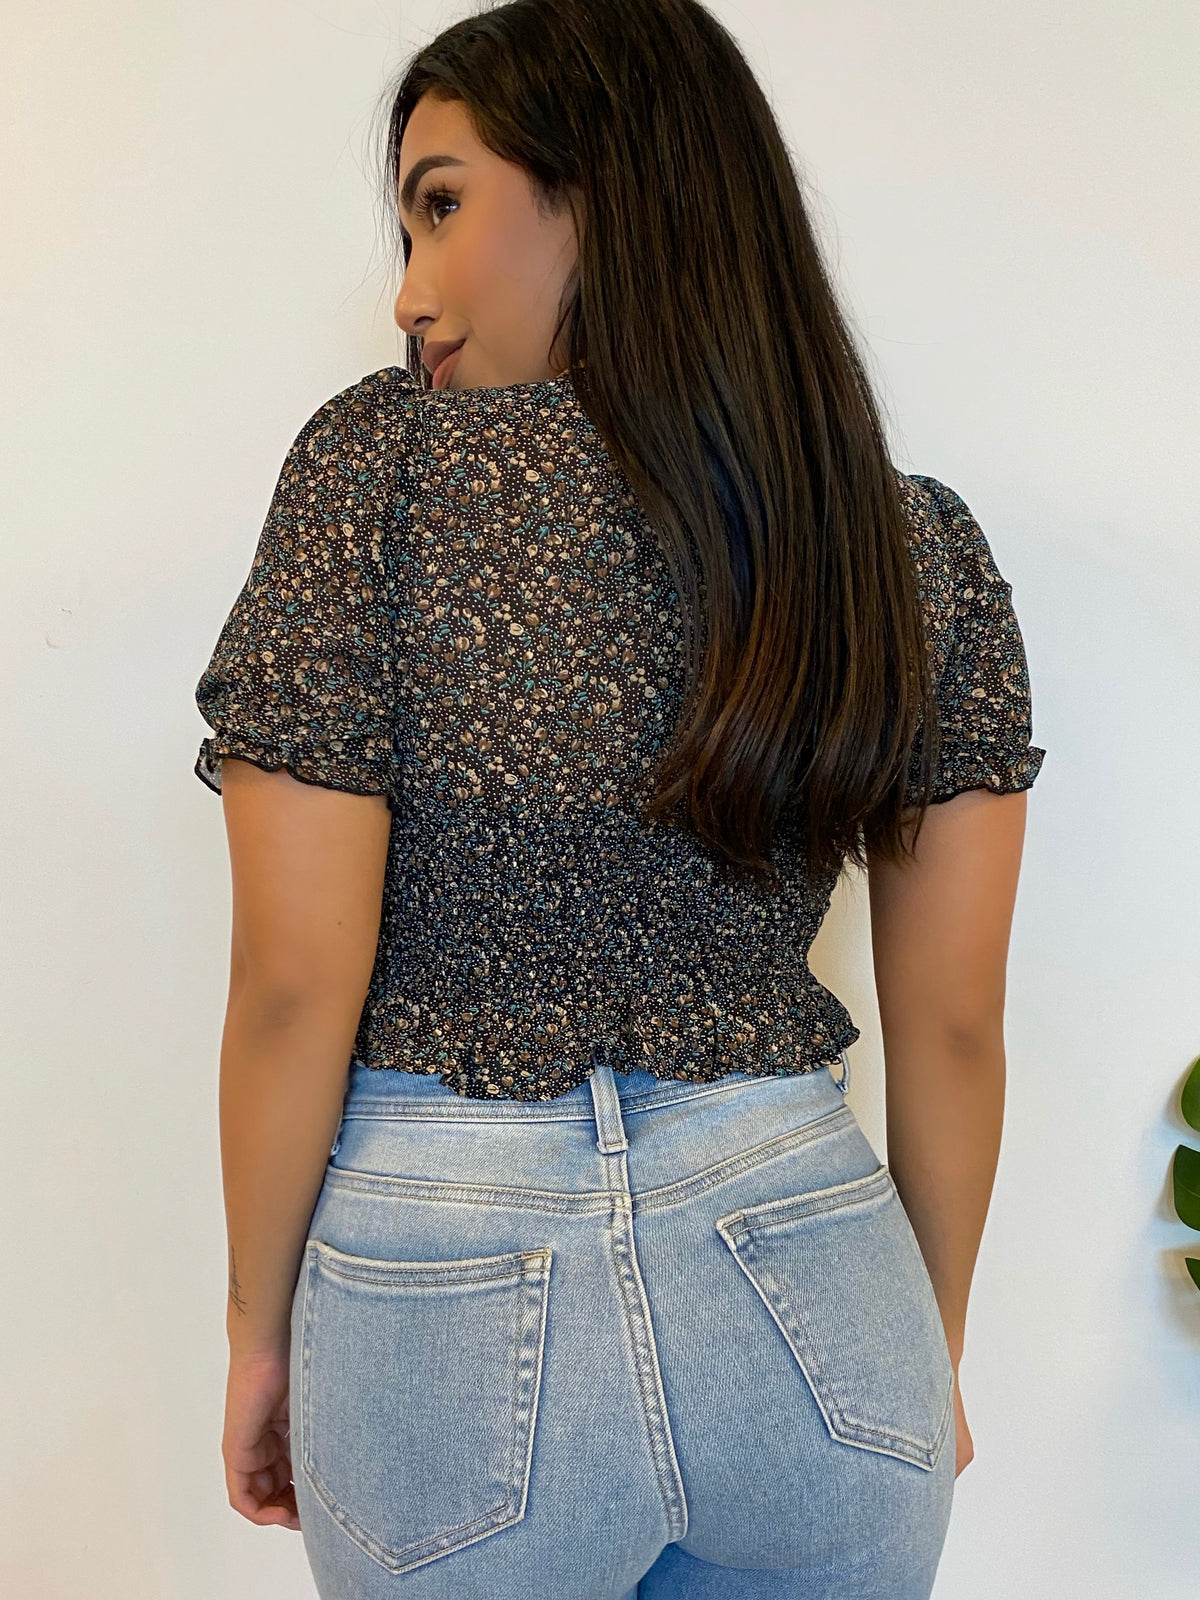 black floral top, self tie up, ruffles sleeves, short sleeve, above the belly button length